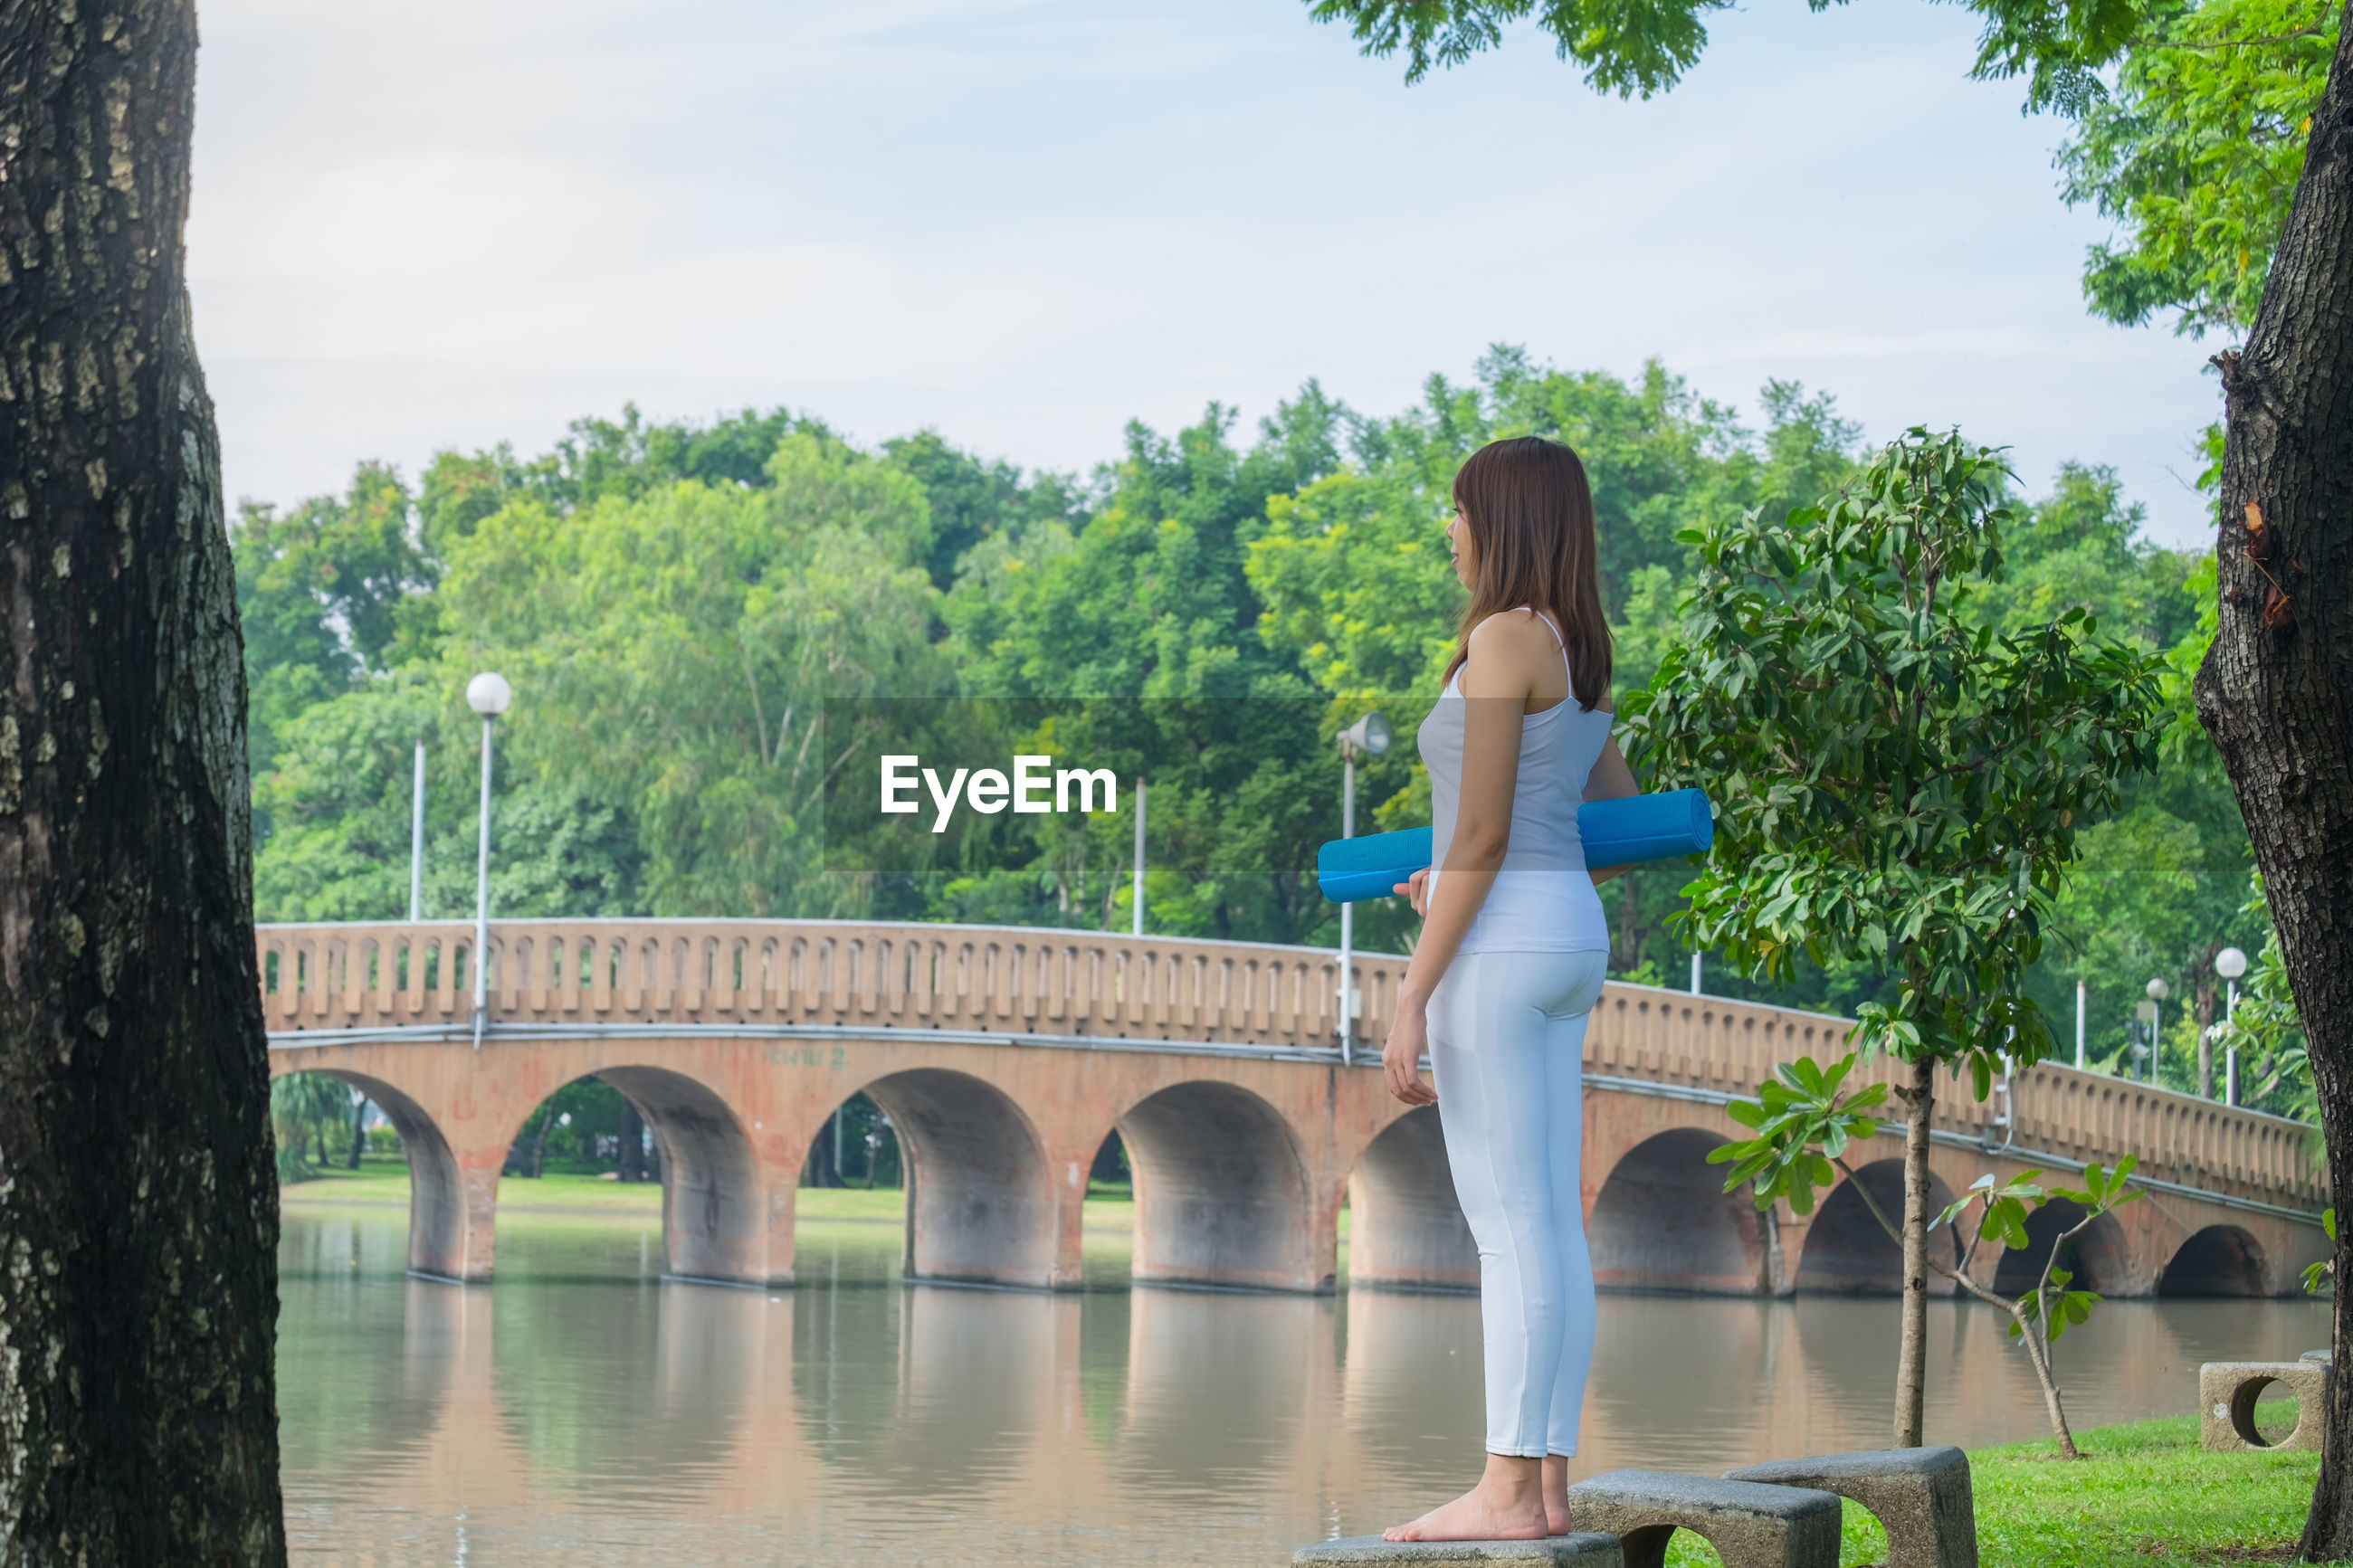 Woman by river against trees and sky